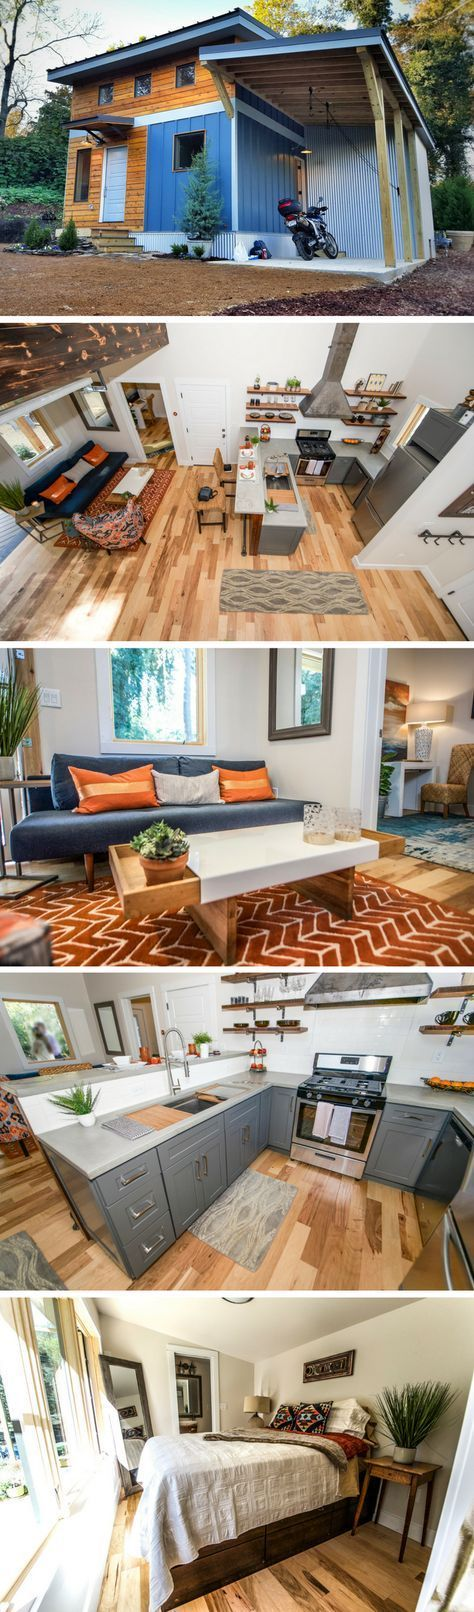 the urban micro house a 600 sq ft home from wind river tiny homes - Tiny House 600 Sq Ft